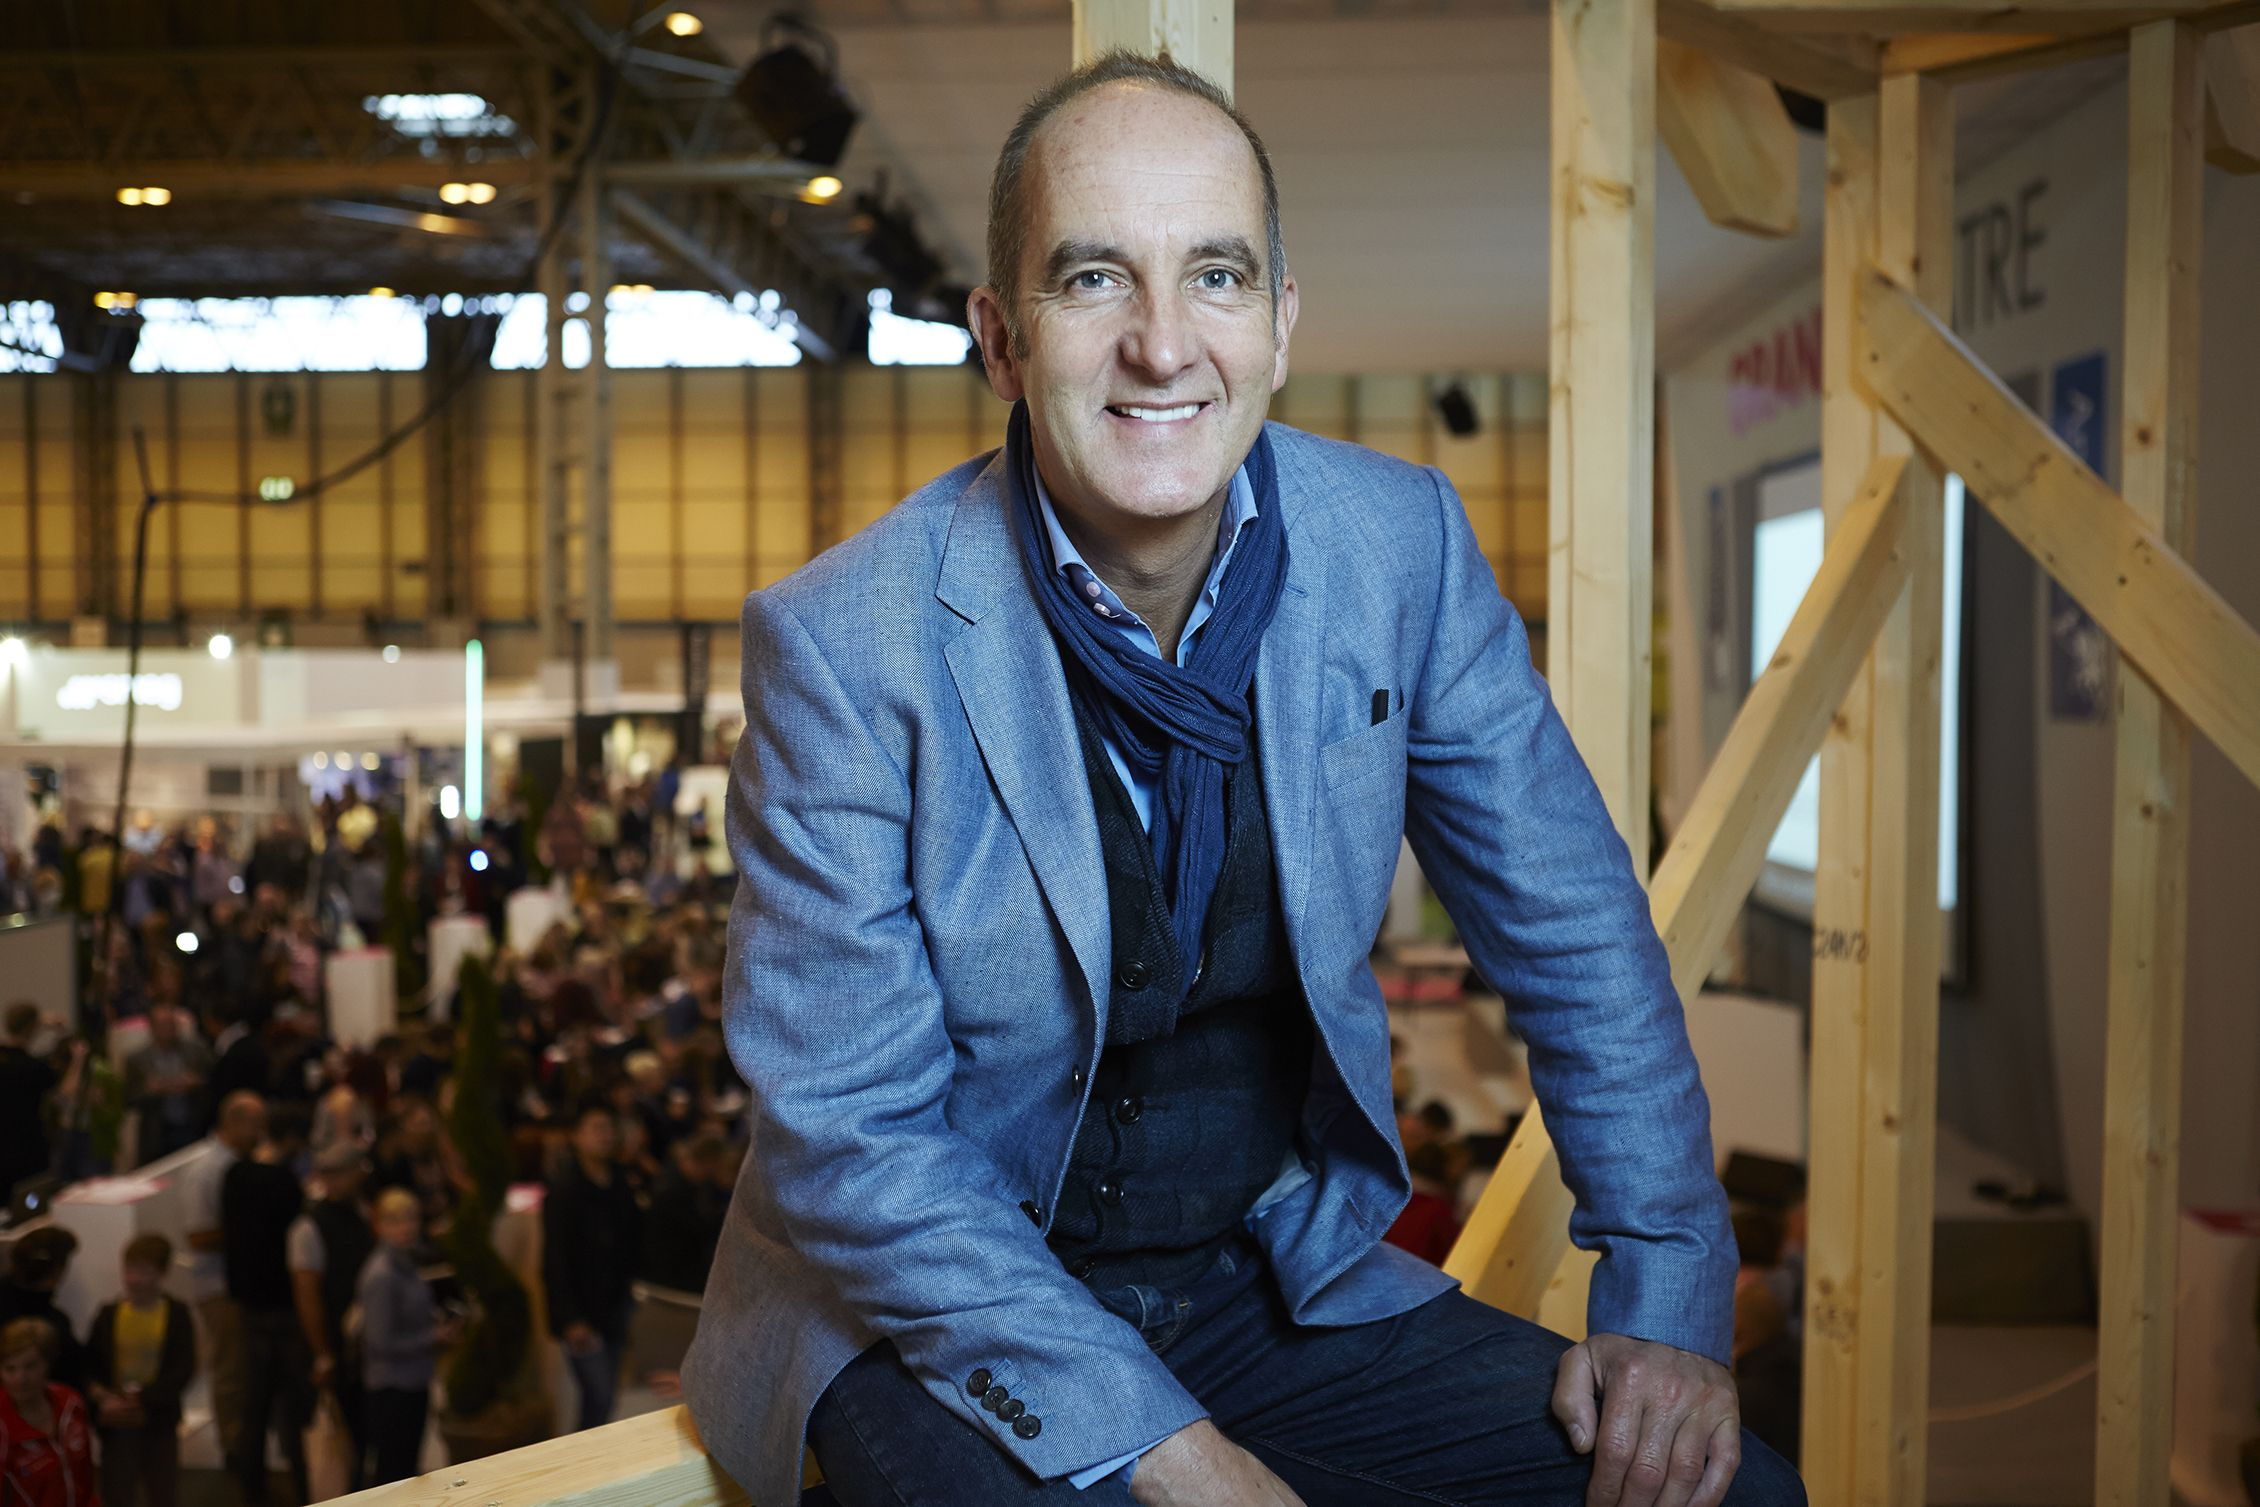 Grand Designs' Kevin McCloud reveals 3 key ways to make your home more sustainable